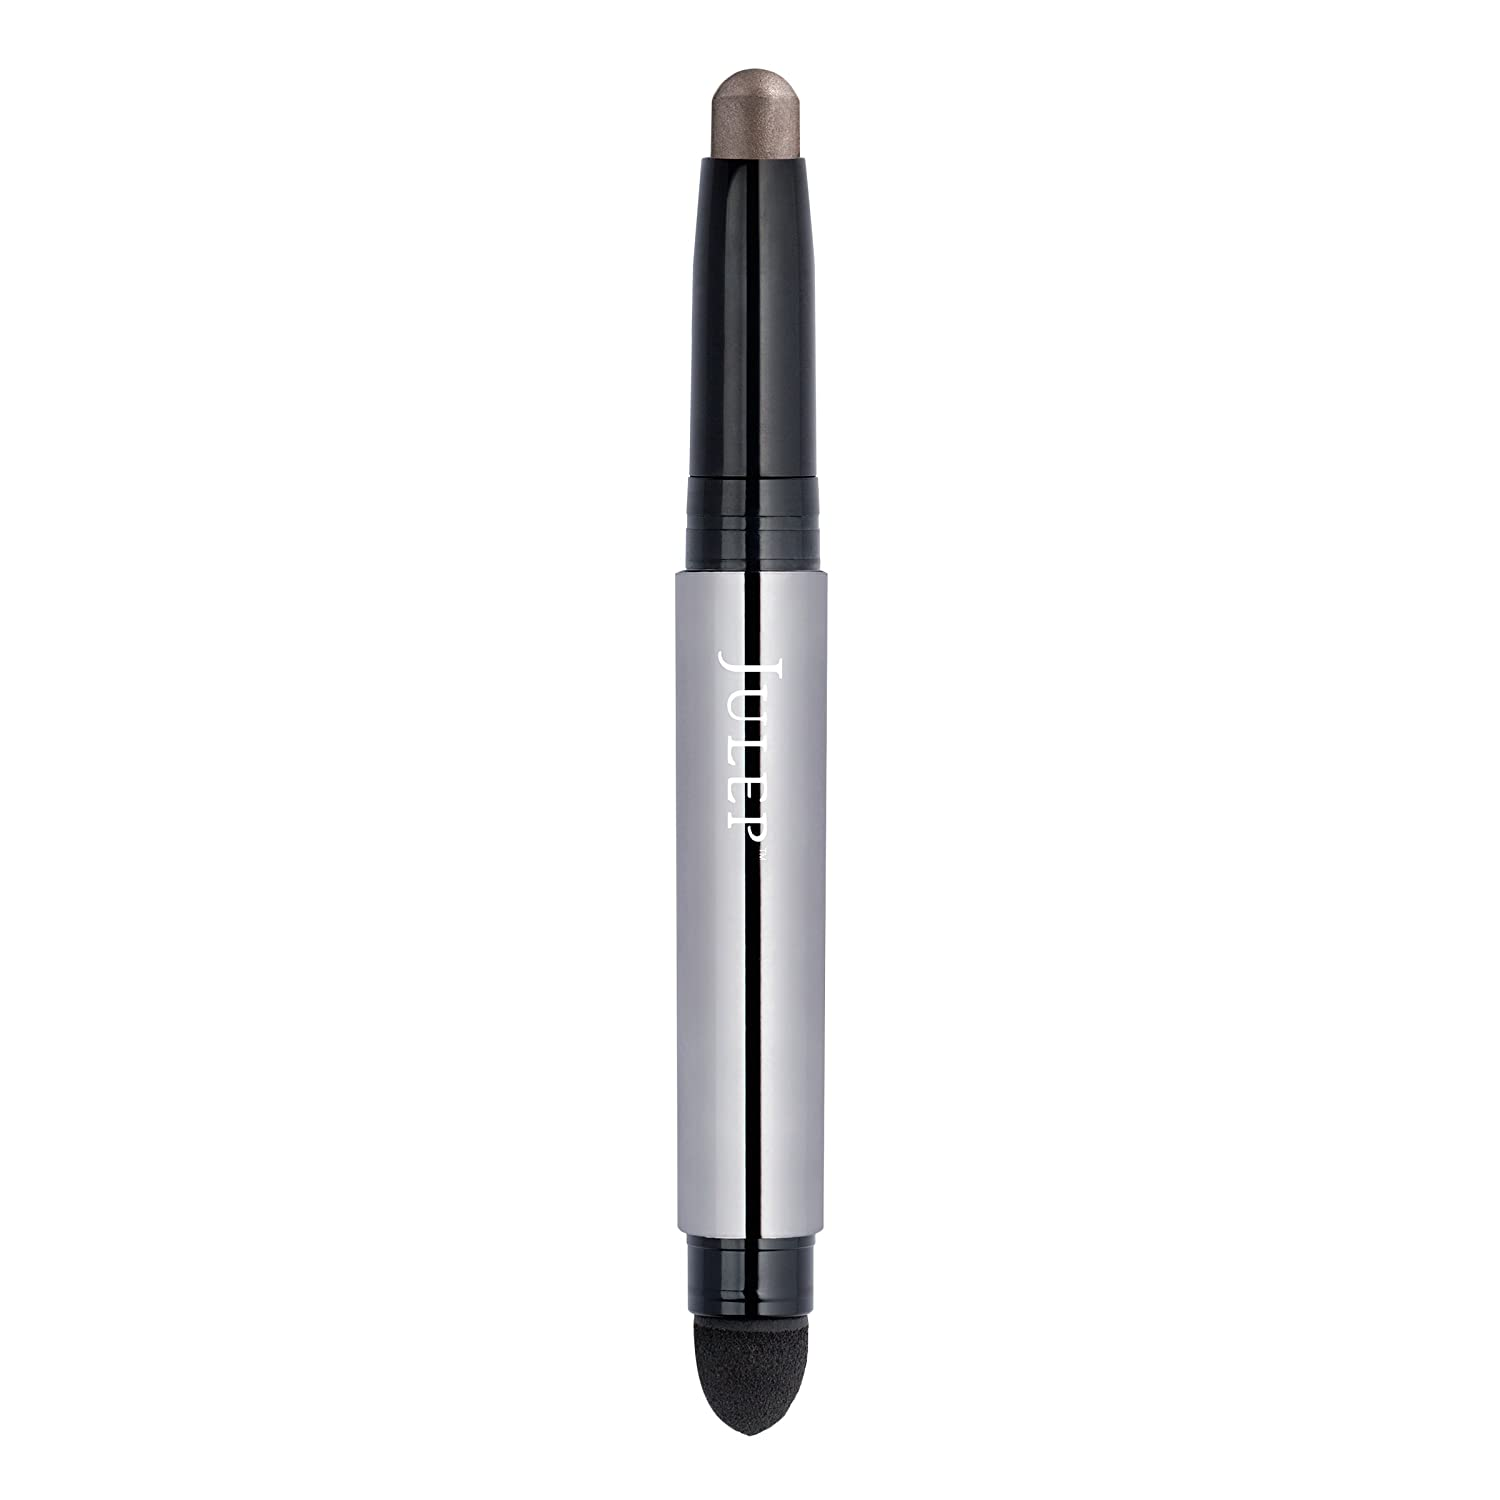 Julep Eyeshadow 101 Crème to Powder Waterproof Eyeshadow Stick, Taupe Shimmer